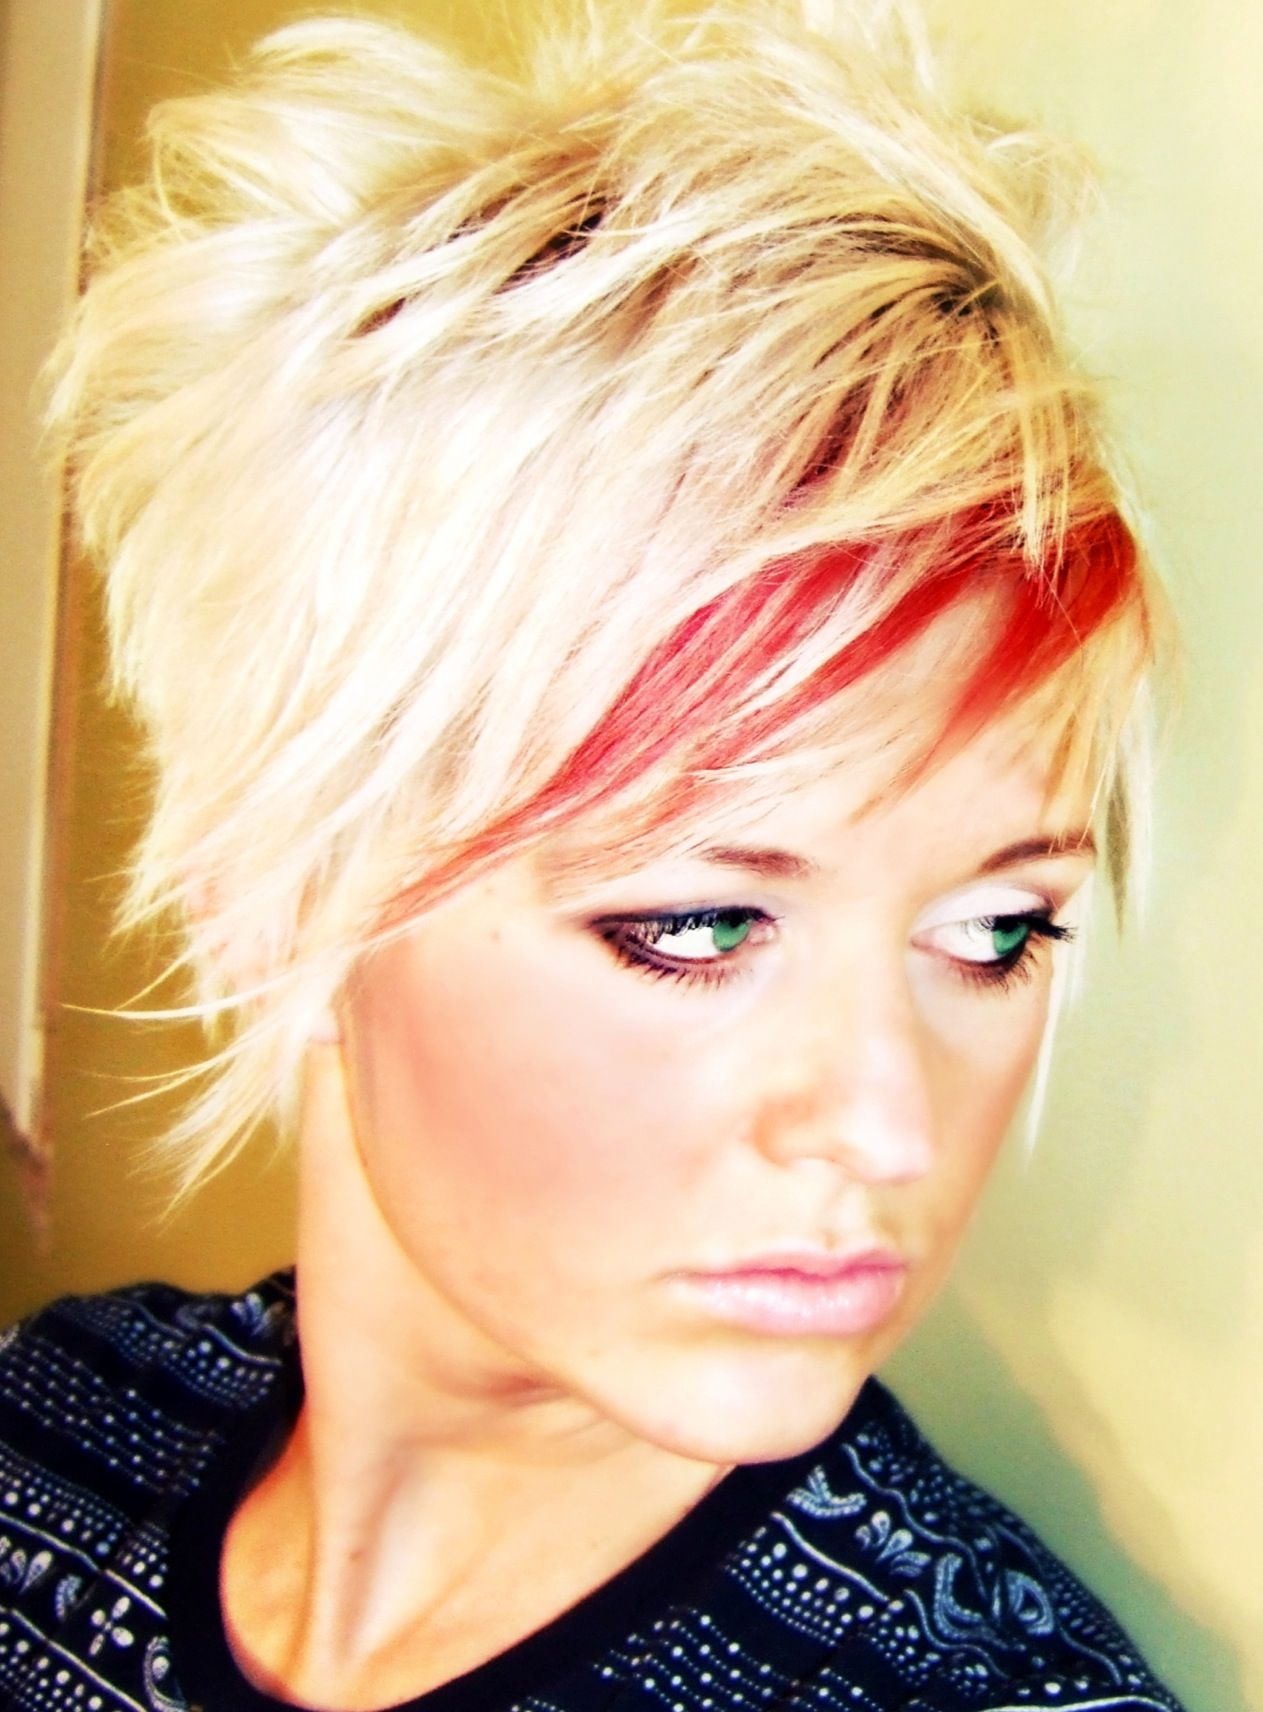 16 Great Short Shaggy Haircuts for Women - 16 Great Short Shaggy Haircuts For Women Best Red Highlights